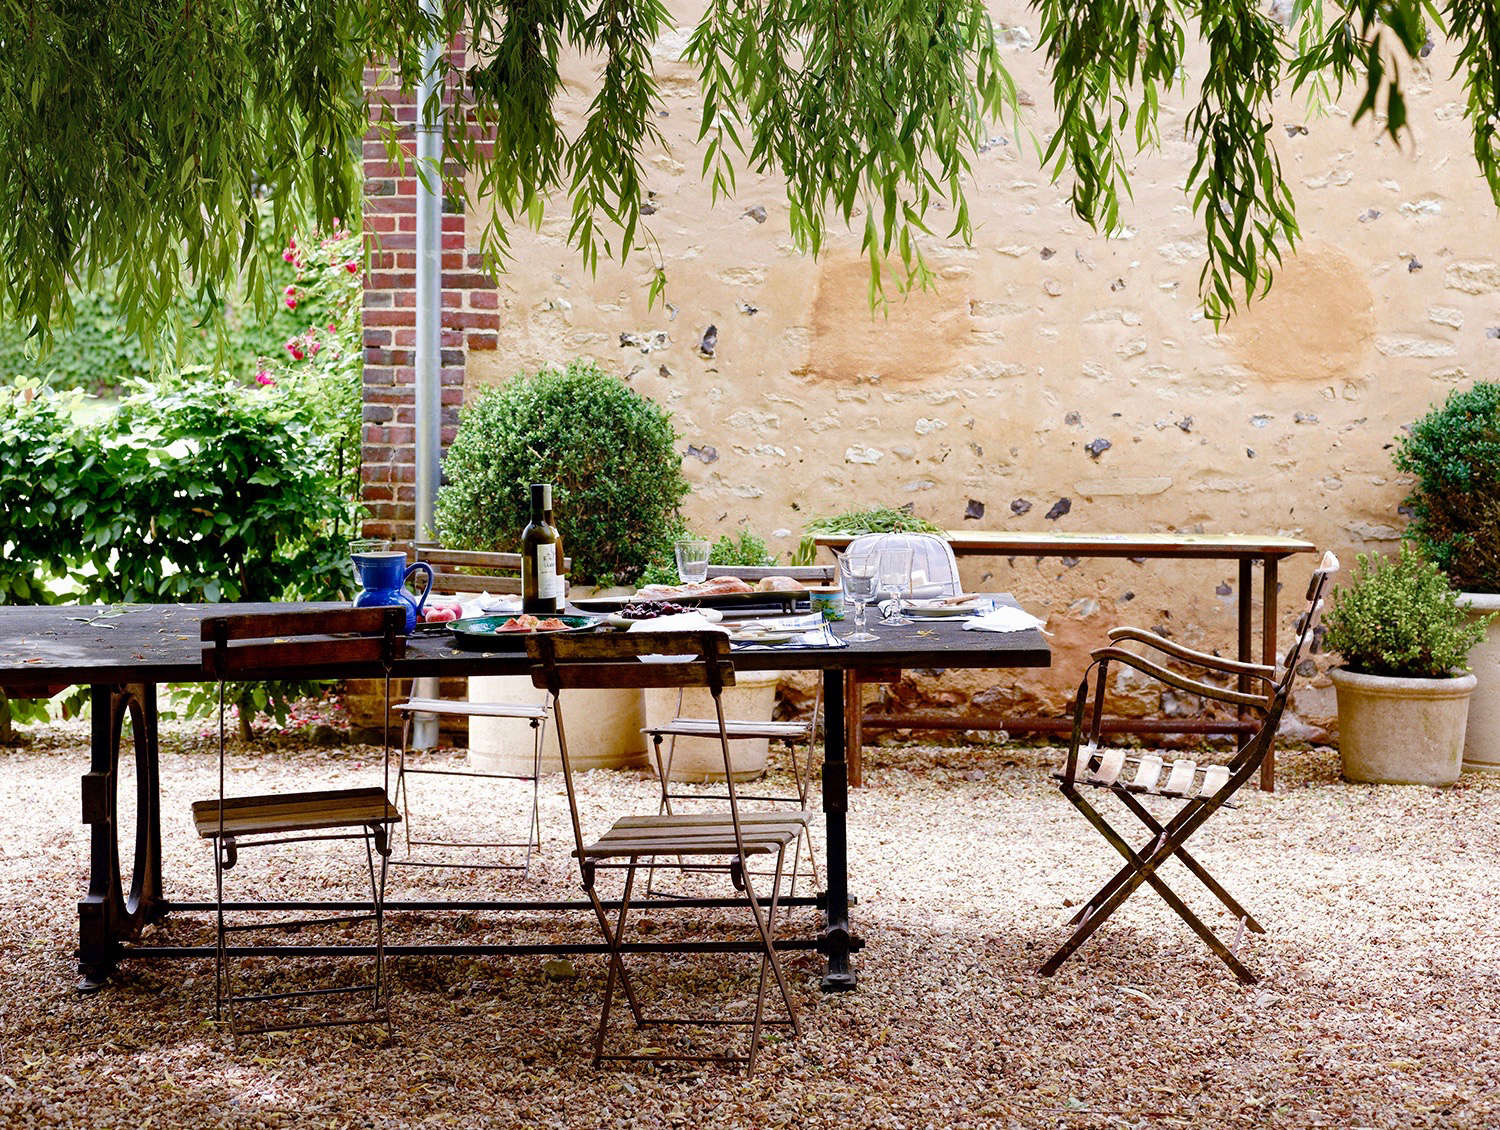 Landscaping Ideas 16 Sustainable Design Tips For A Garden